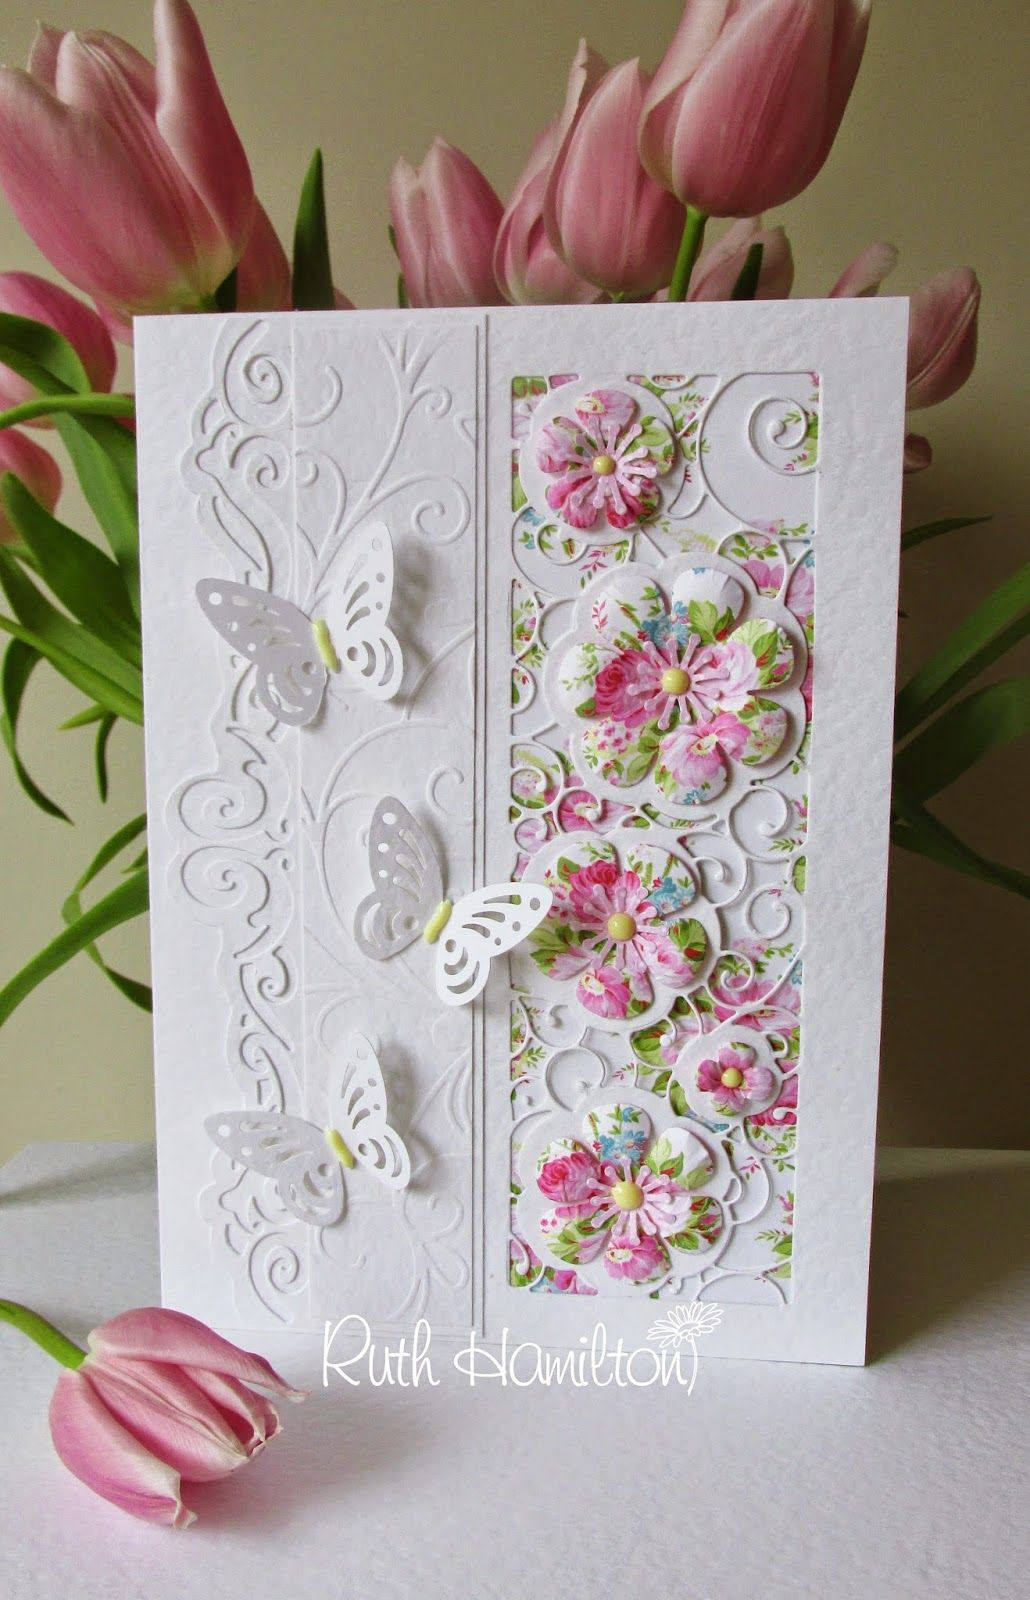 A Passion For Cards: Bellus Buttercup card